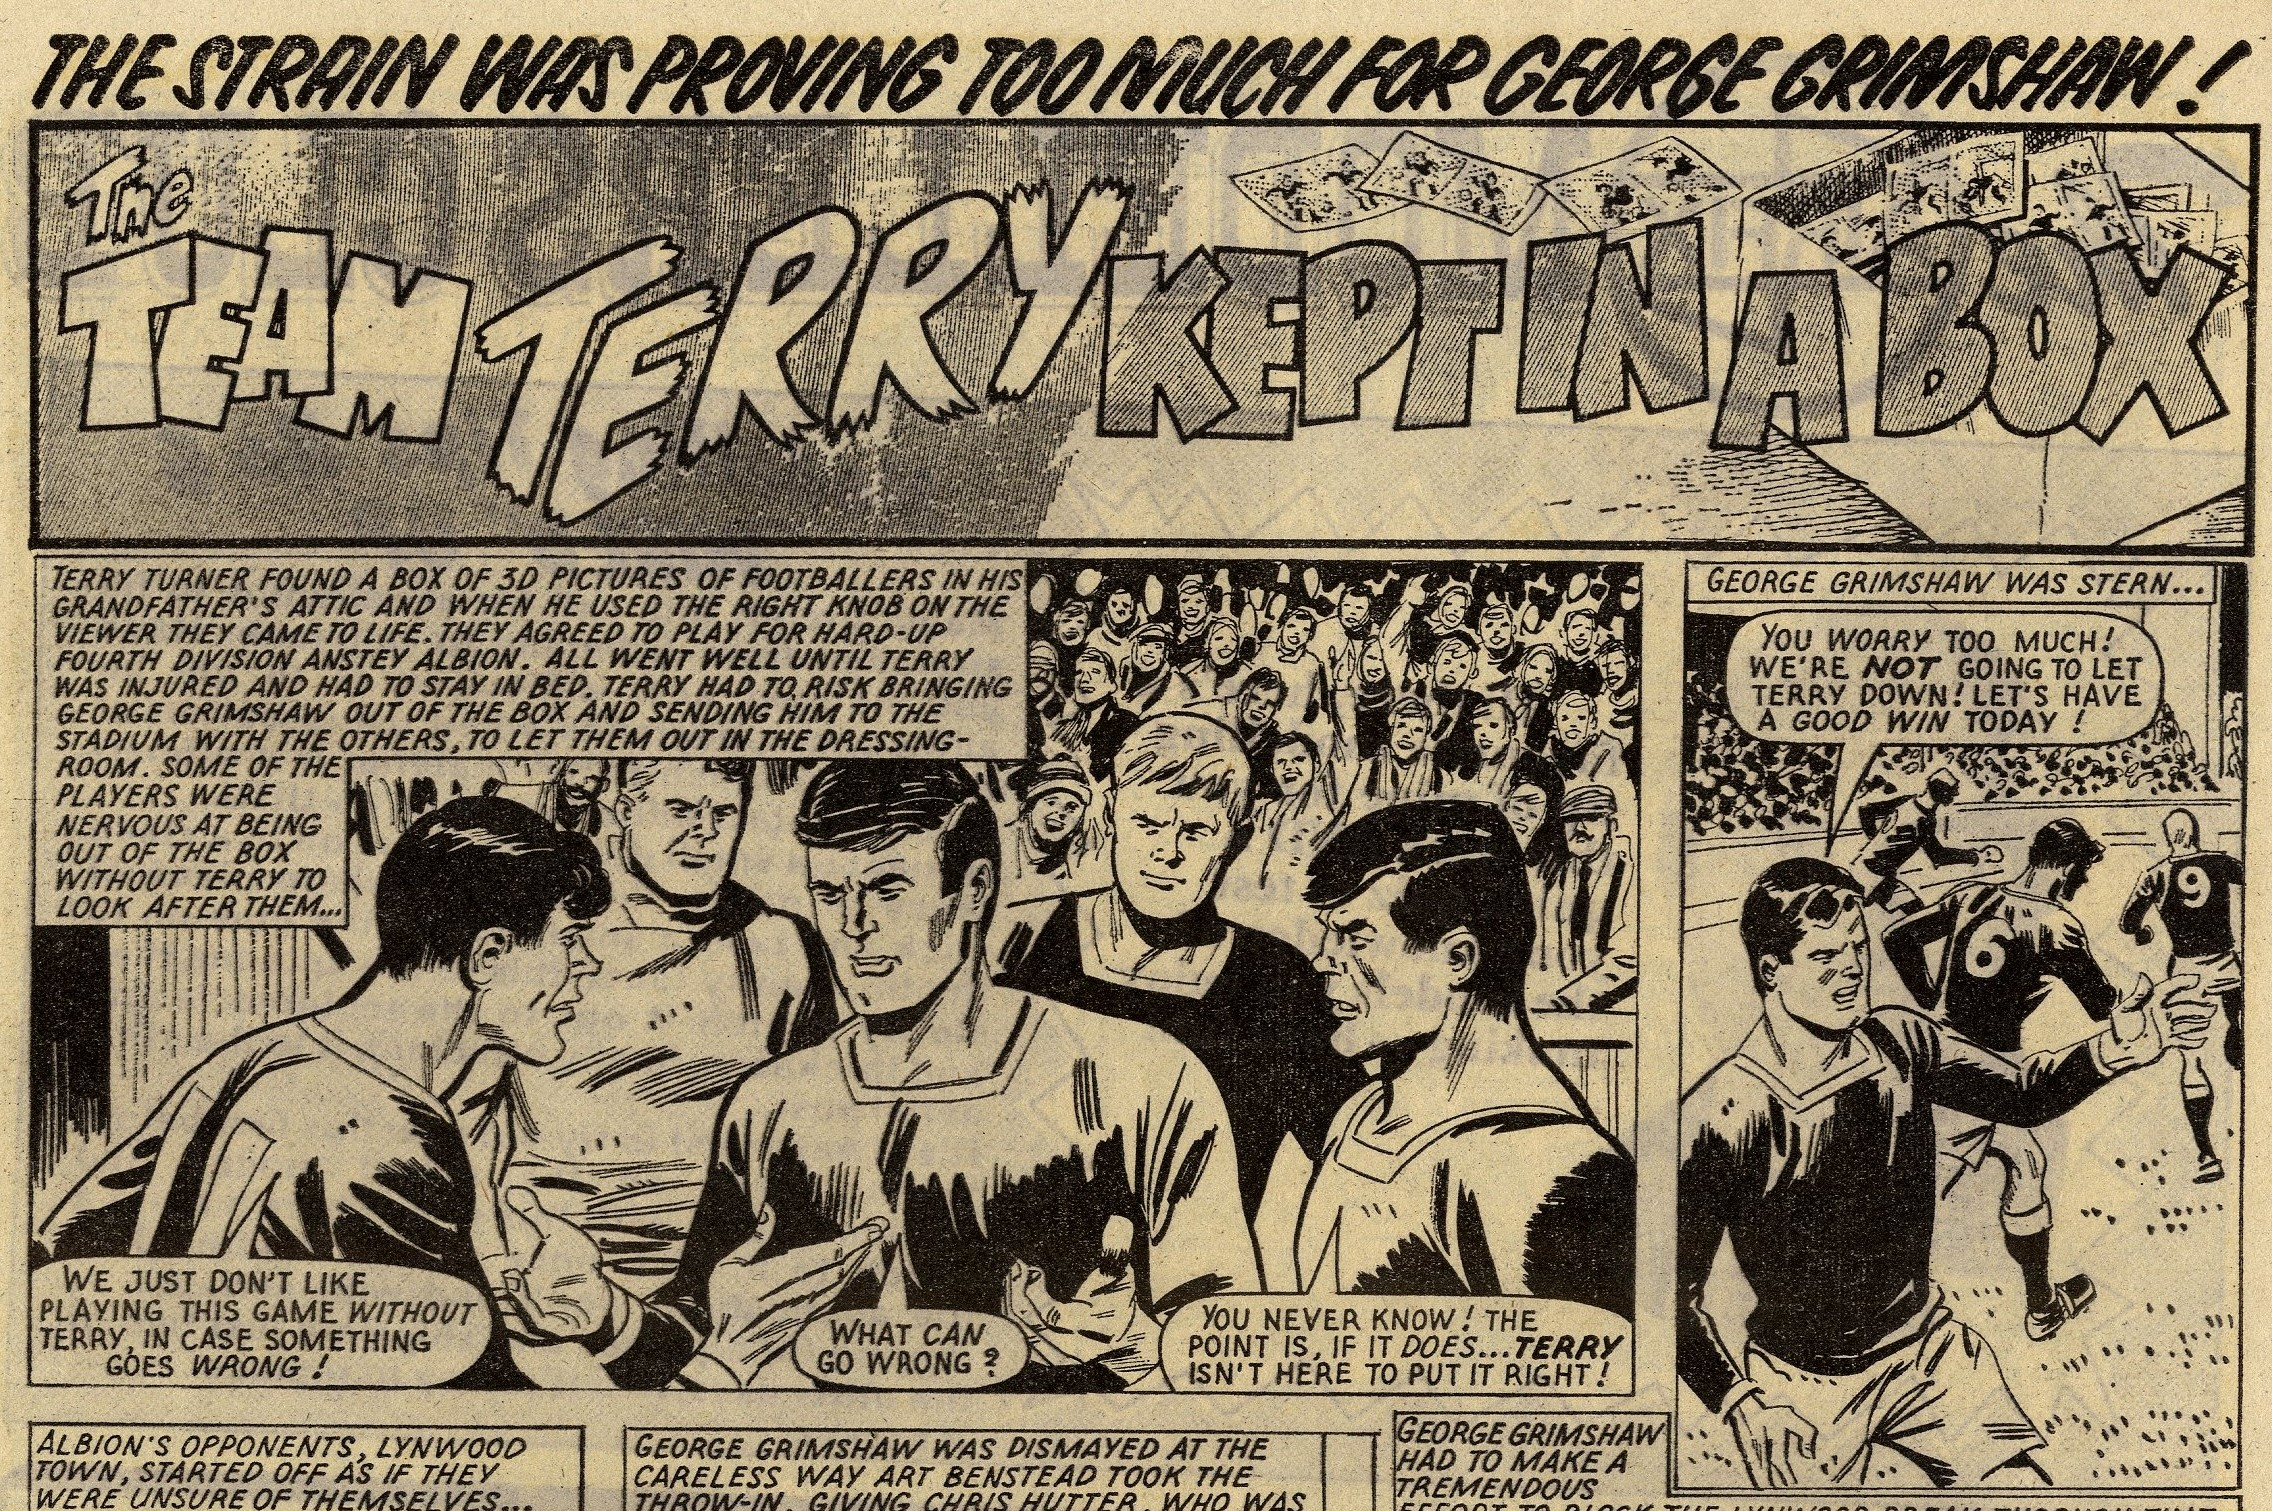 The Team Terry Kept in a Box: Mike White (artist)